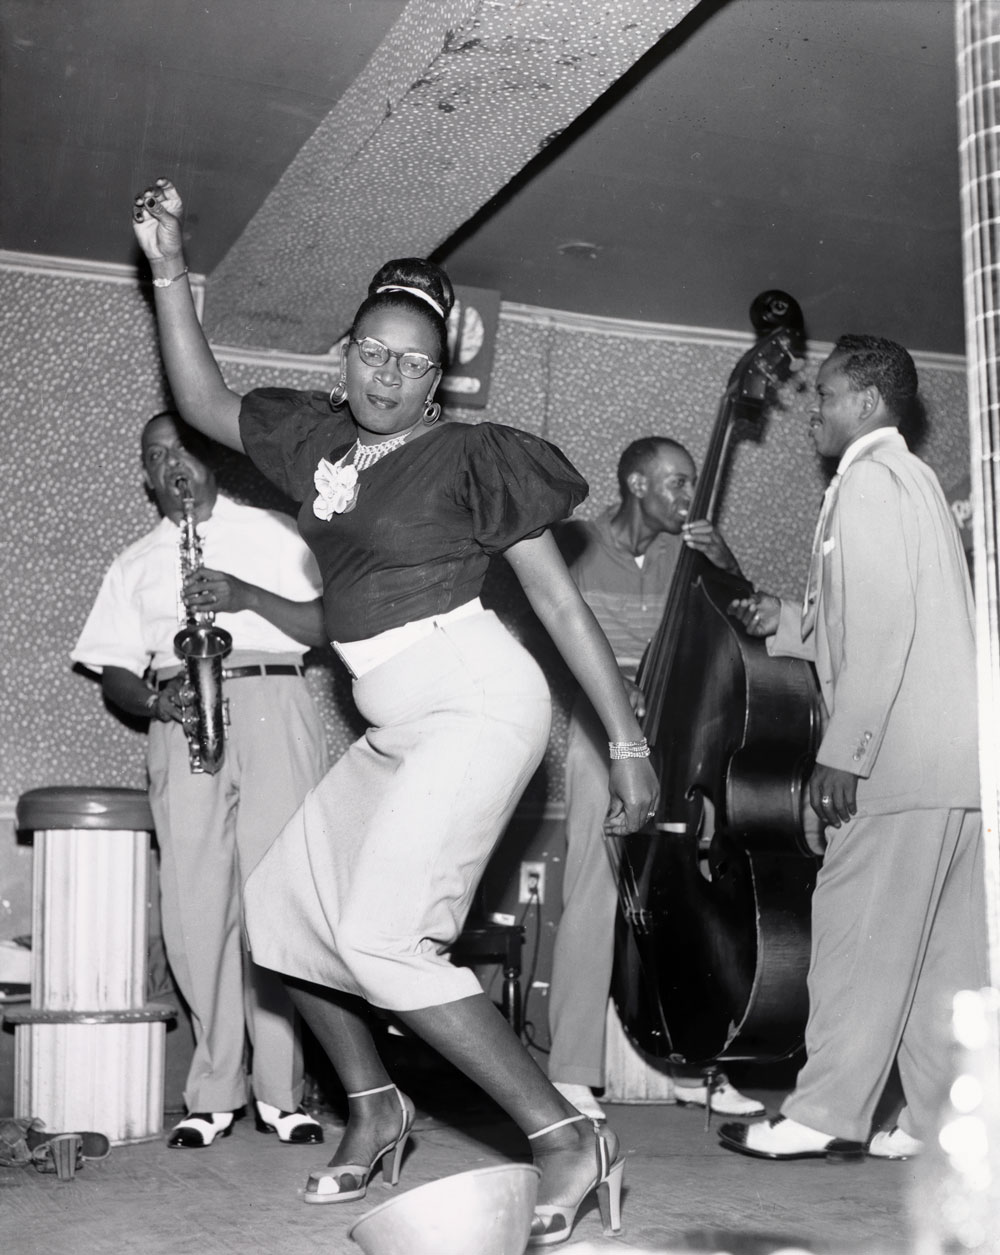 Ralston Crawford, American (1906–1978). Dancer and Meyer Kennedy at the Caravan Club, New Orleans, 1953. Gelatin silver print, 9 1/2 × 7 9/16 inches. Gift of Neelon Crawford, 2015.49.123.